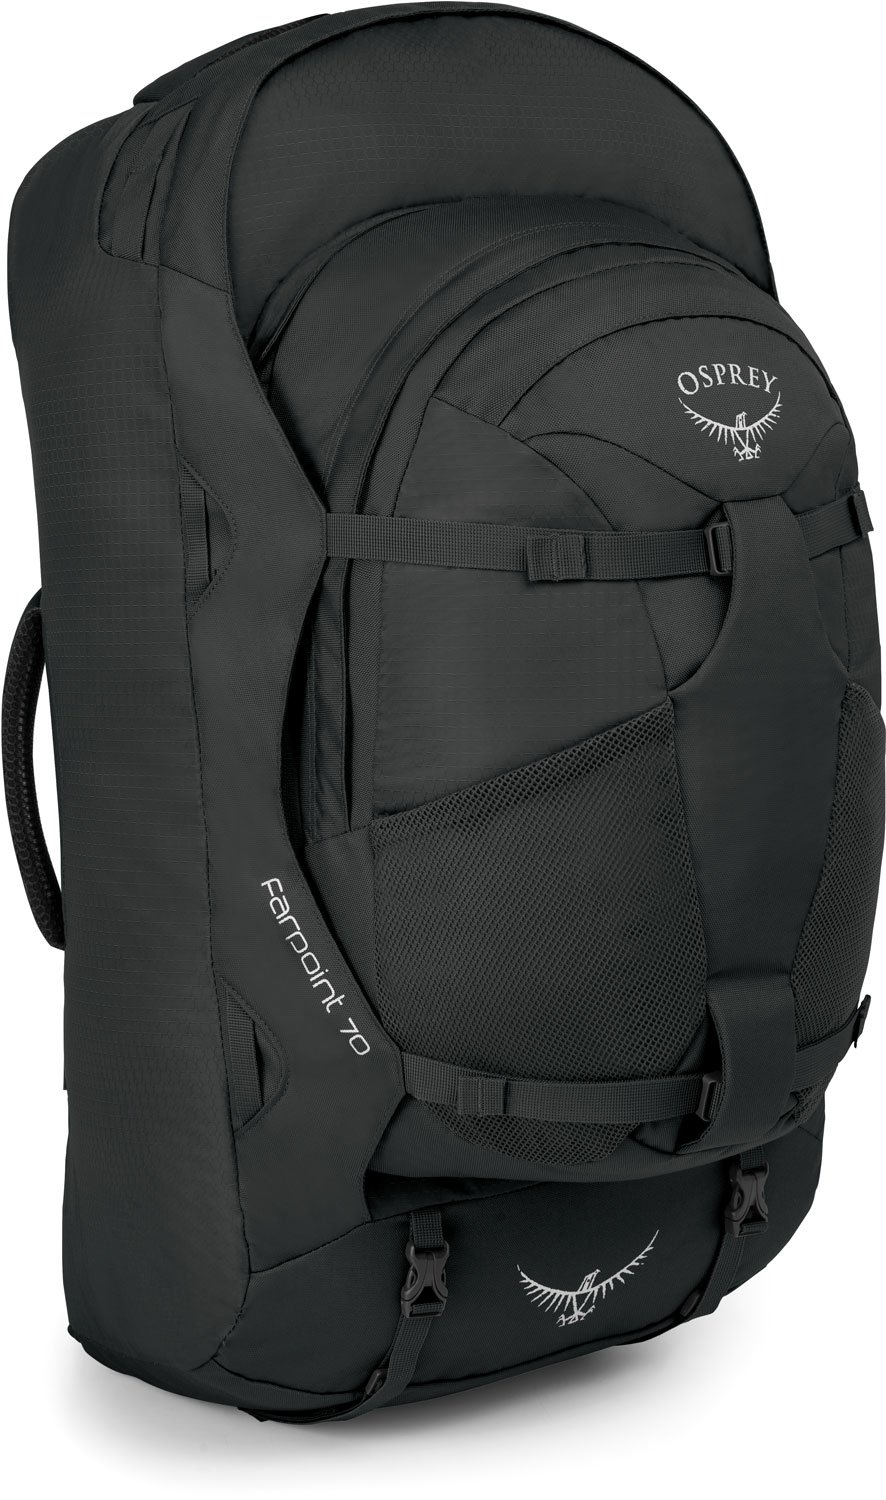 71ChwqP3nYL - Osprey Farpoint 70 Men's Travel Pack